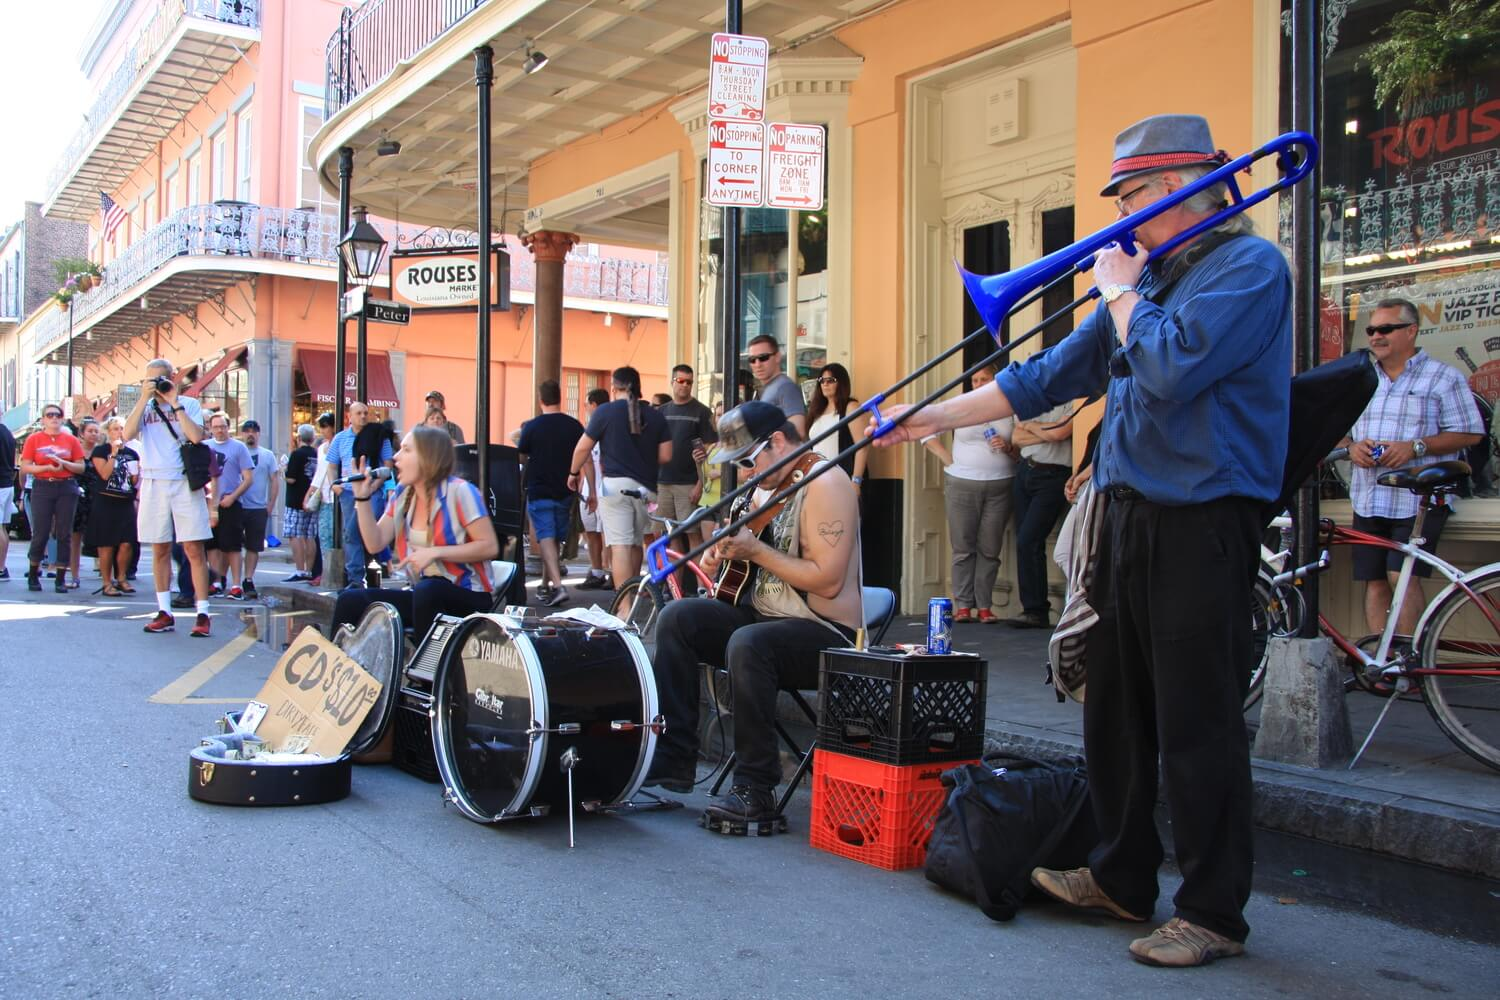 A band performing in the streets of New Orlean's French Quarter. #4 in The Best Things to Do in the French Quarter.